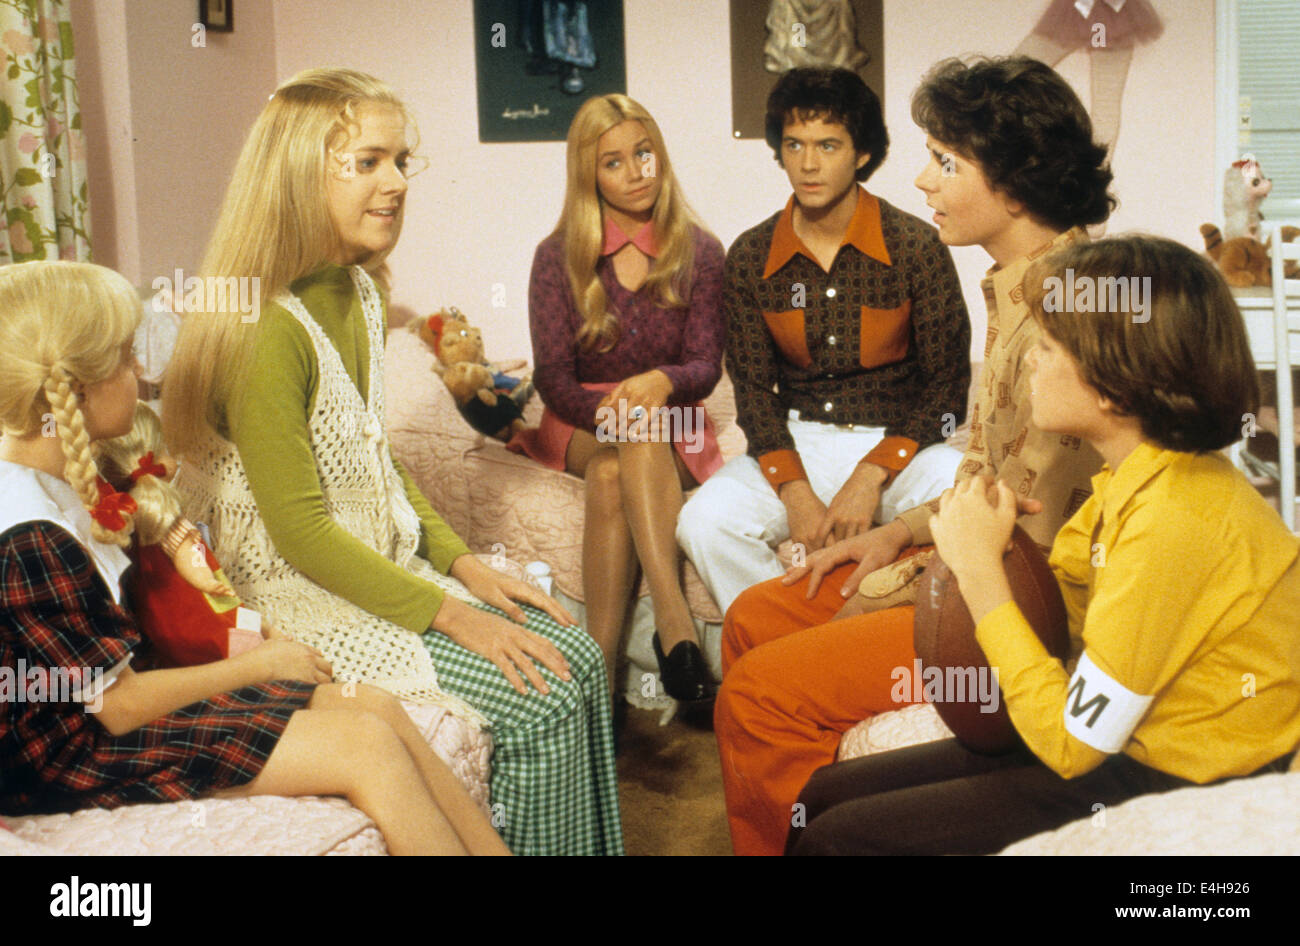 THE BRADY BUNCH MOVIE 1995 Paramount Pictures film - Stock Image